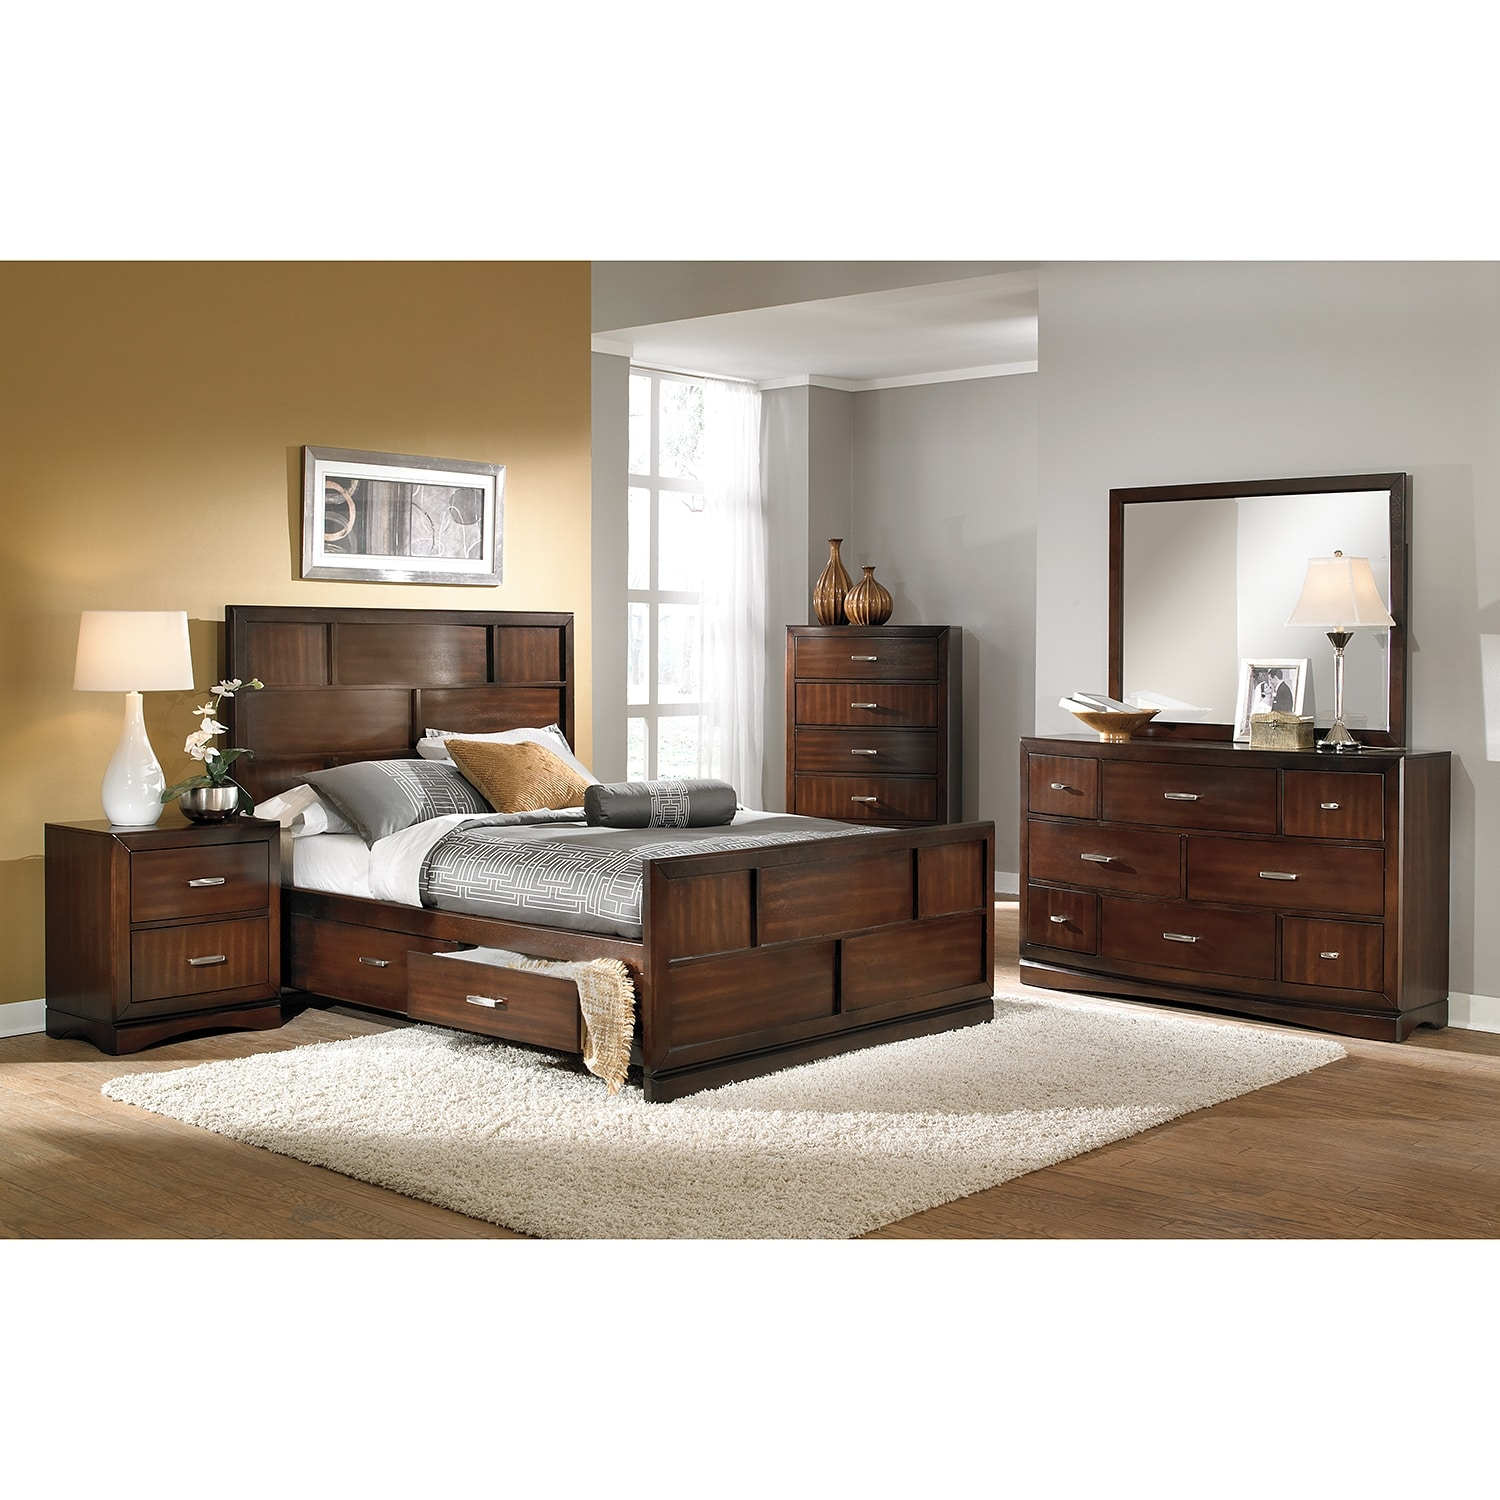 Toronto King Storage Bed Value City Furniture